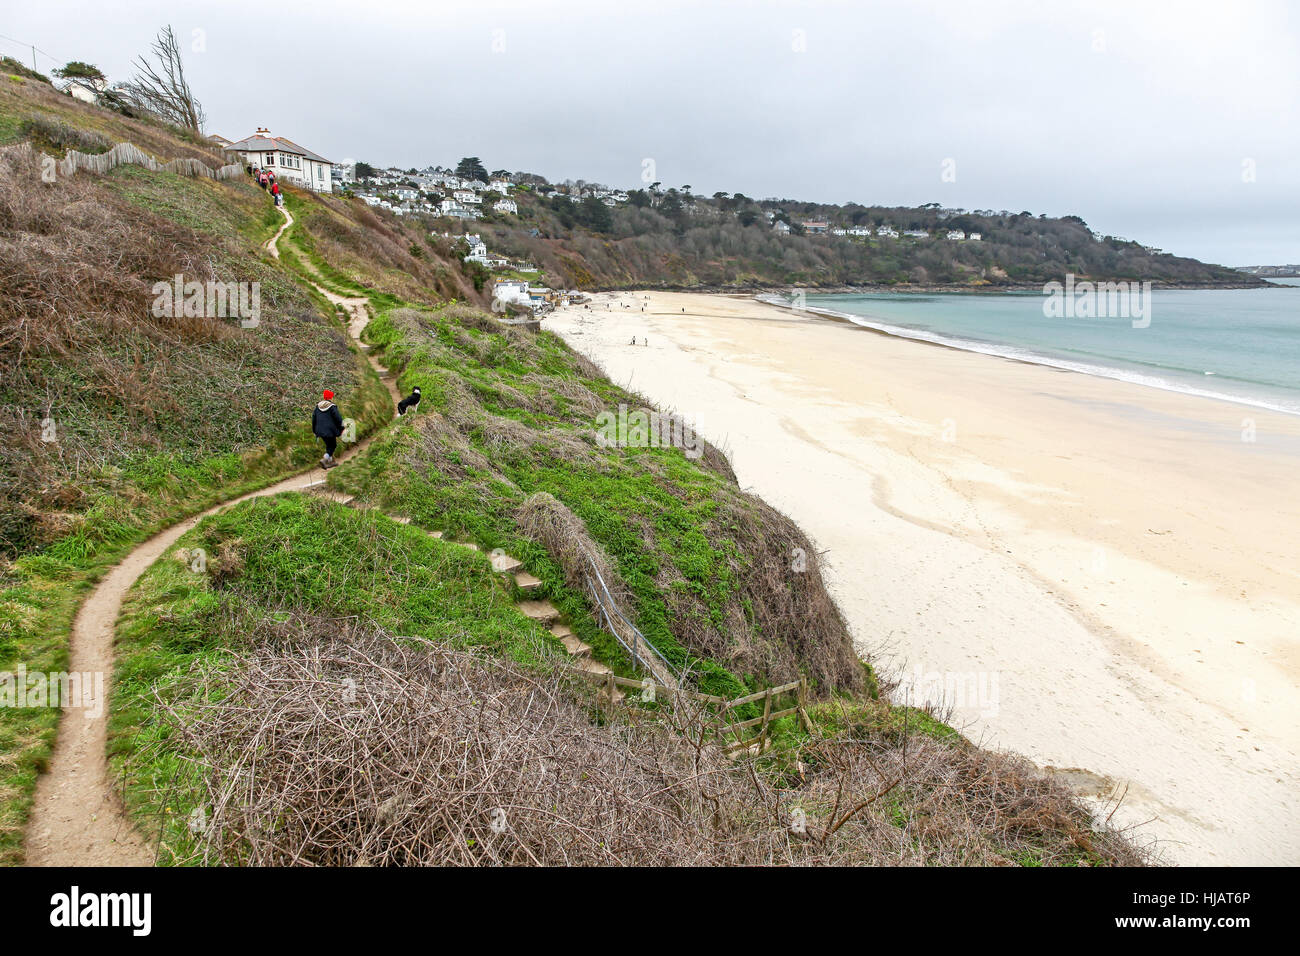 carbis-bay-beach-or-barrepta-cove-near-t